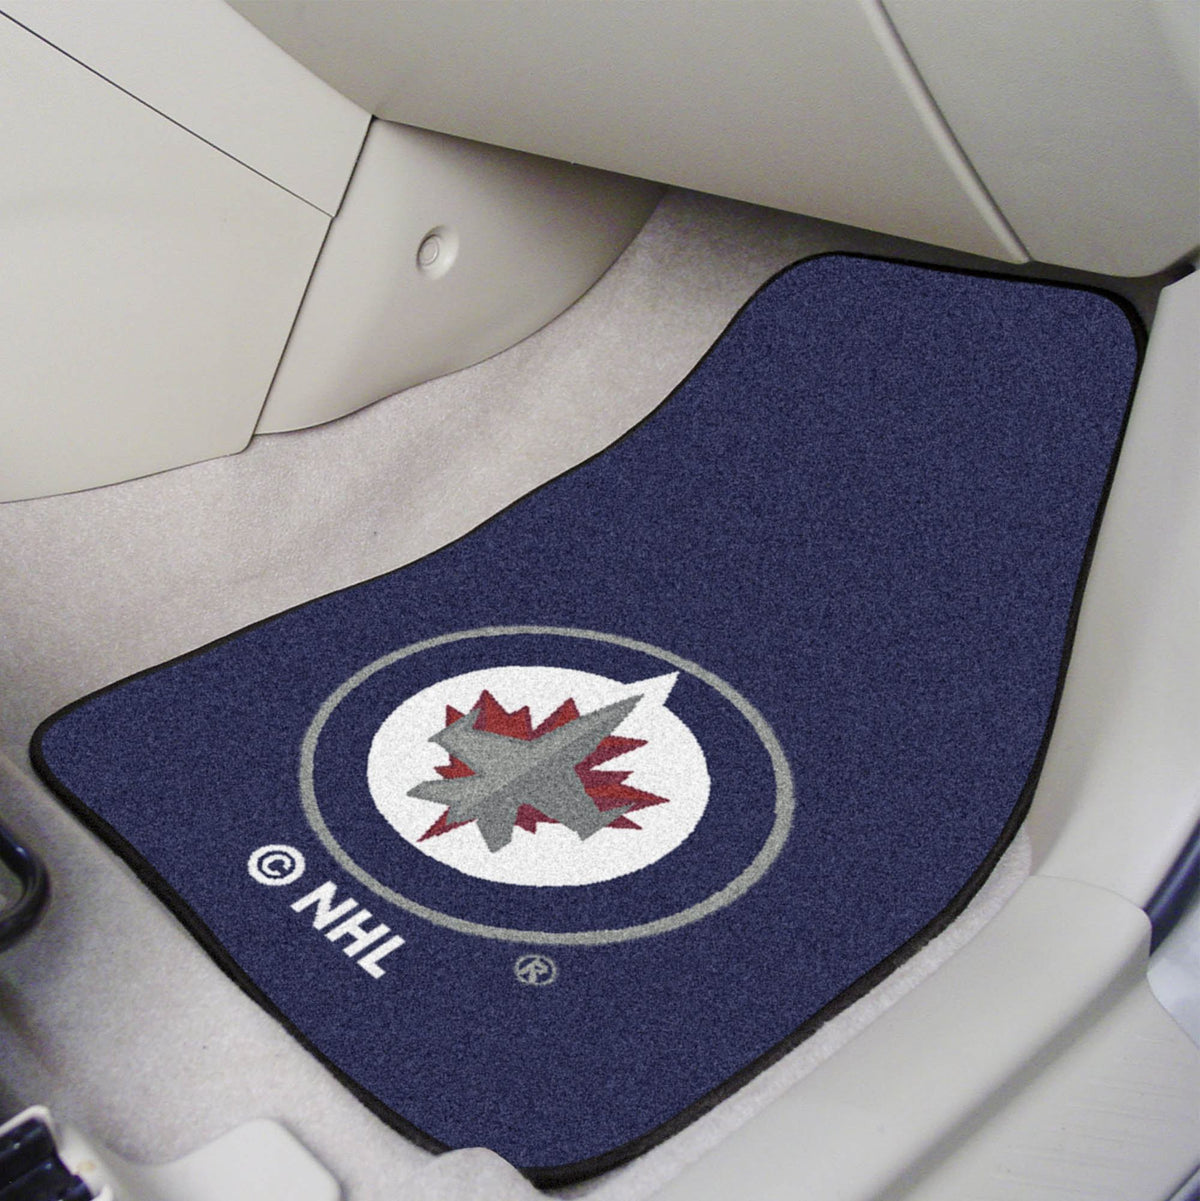 NHL - Carpet Car Mat, 2-Piece Set NHL Mats, Front Car Mats, 2-pc Carpet Car Mat Set, NHL, Auto Fan Mats Winnipeg Jets